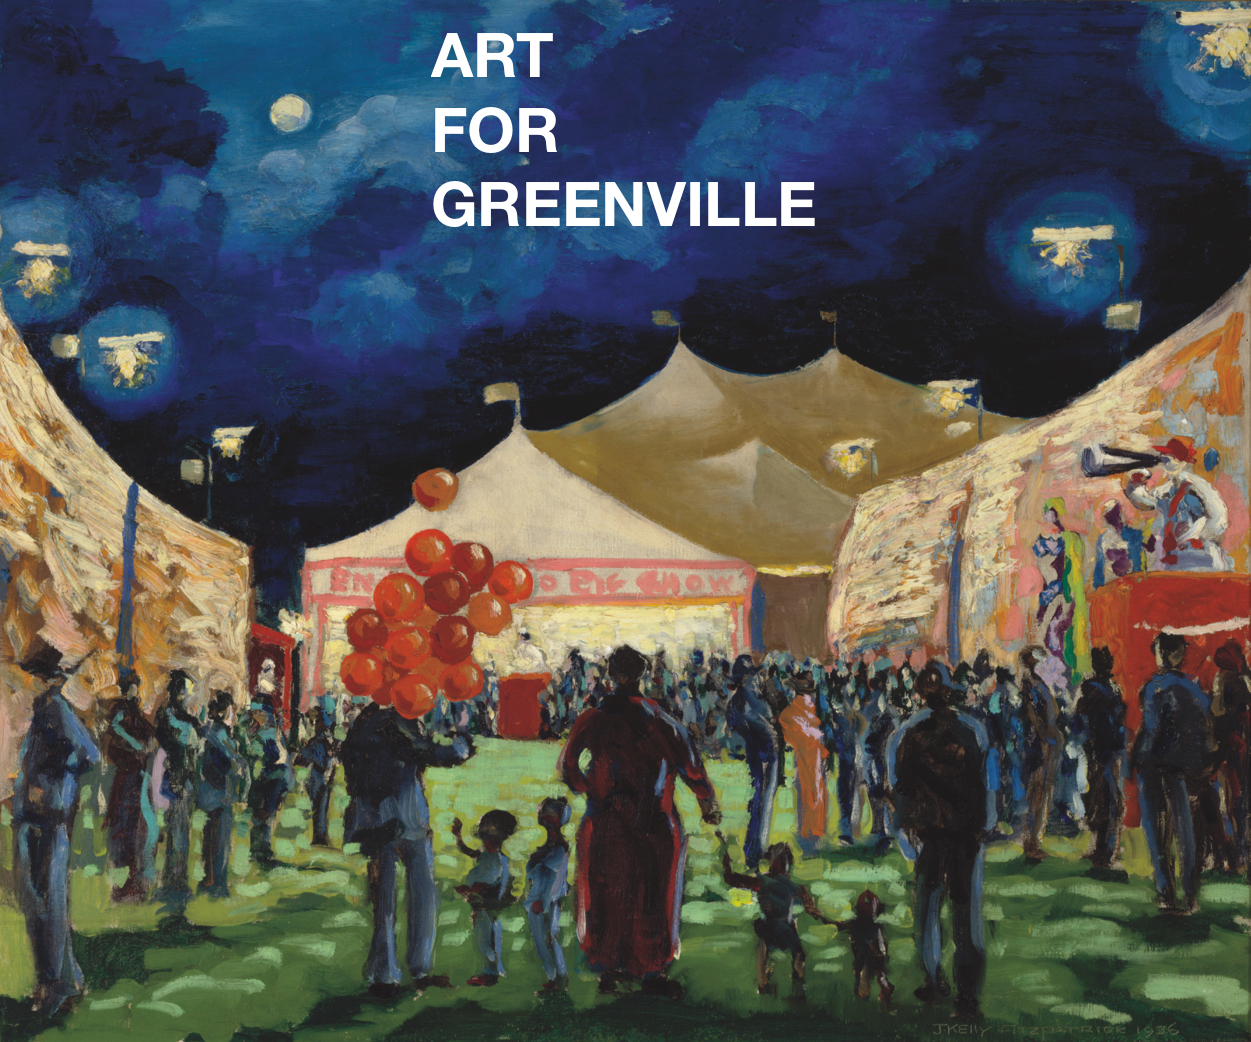 FITZPATRICK_Art_for_Greenville__1__copy.jpg